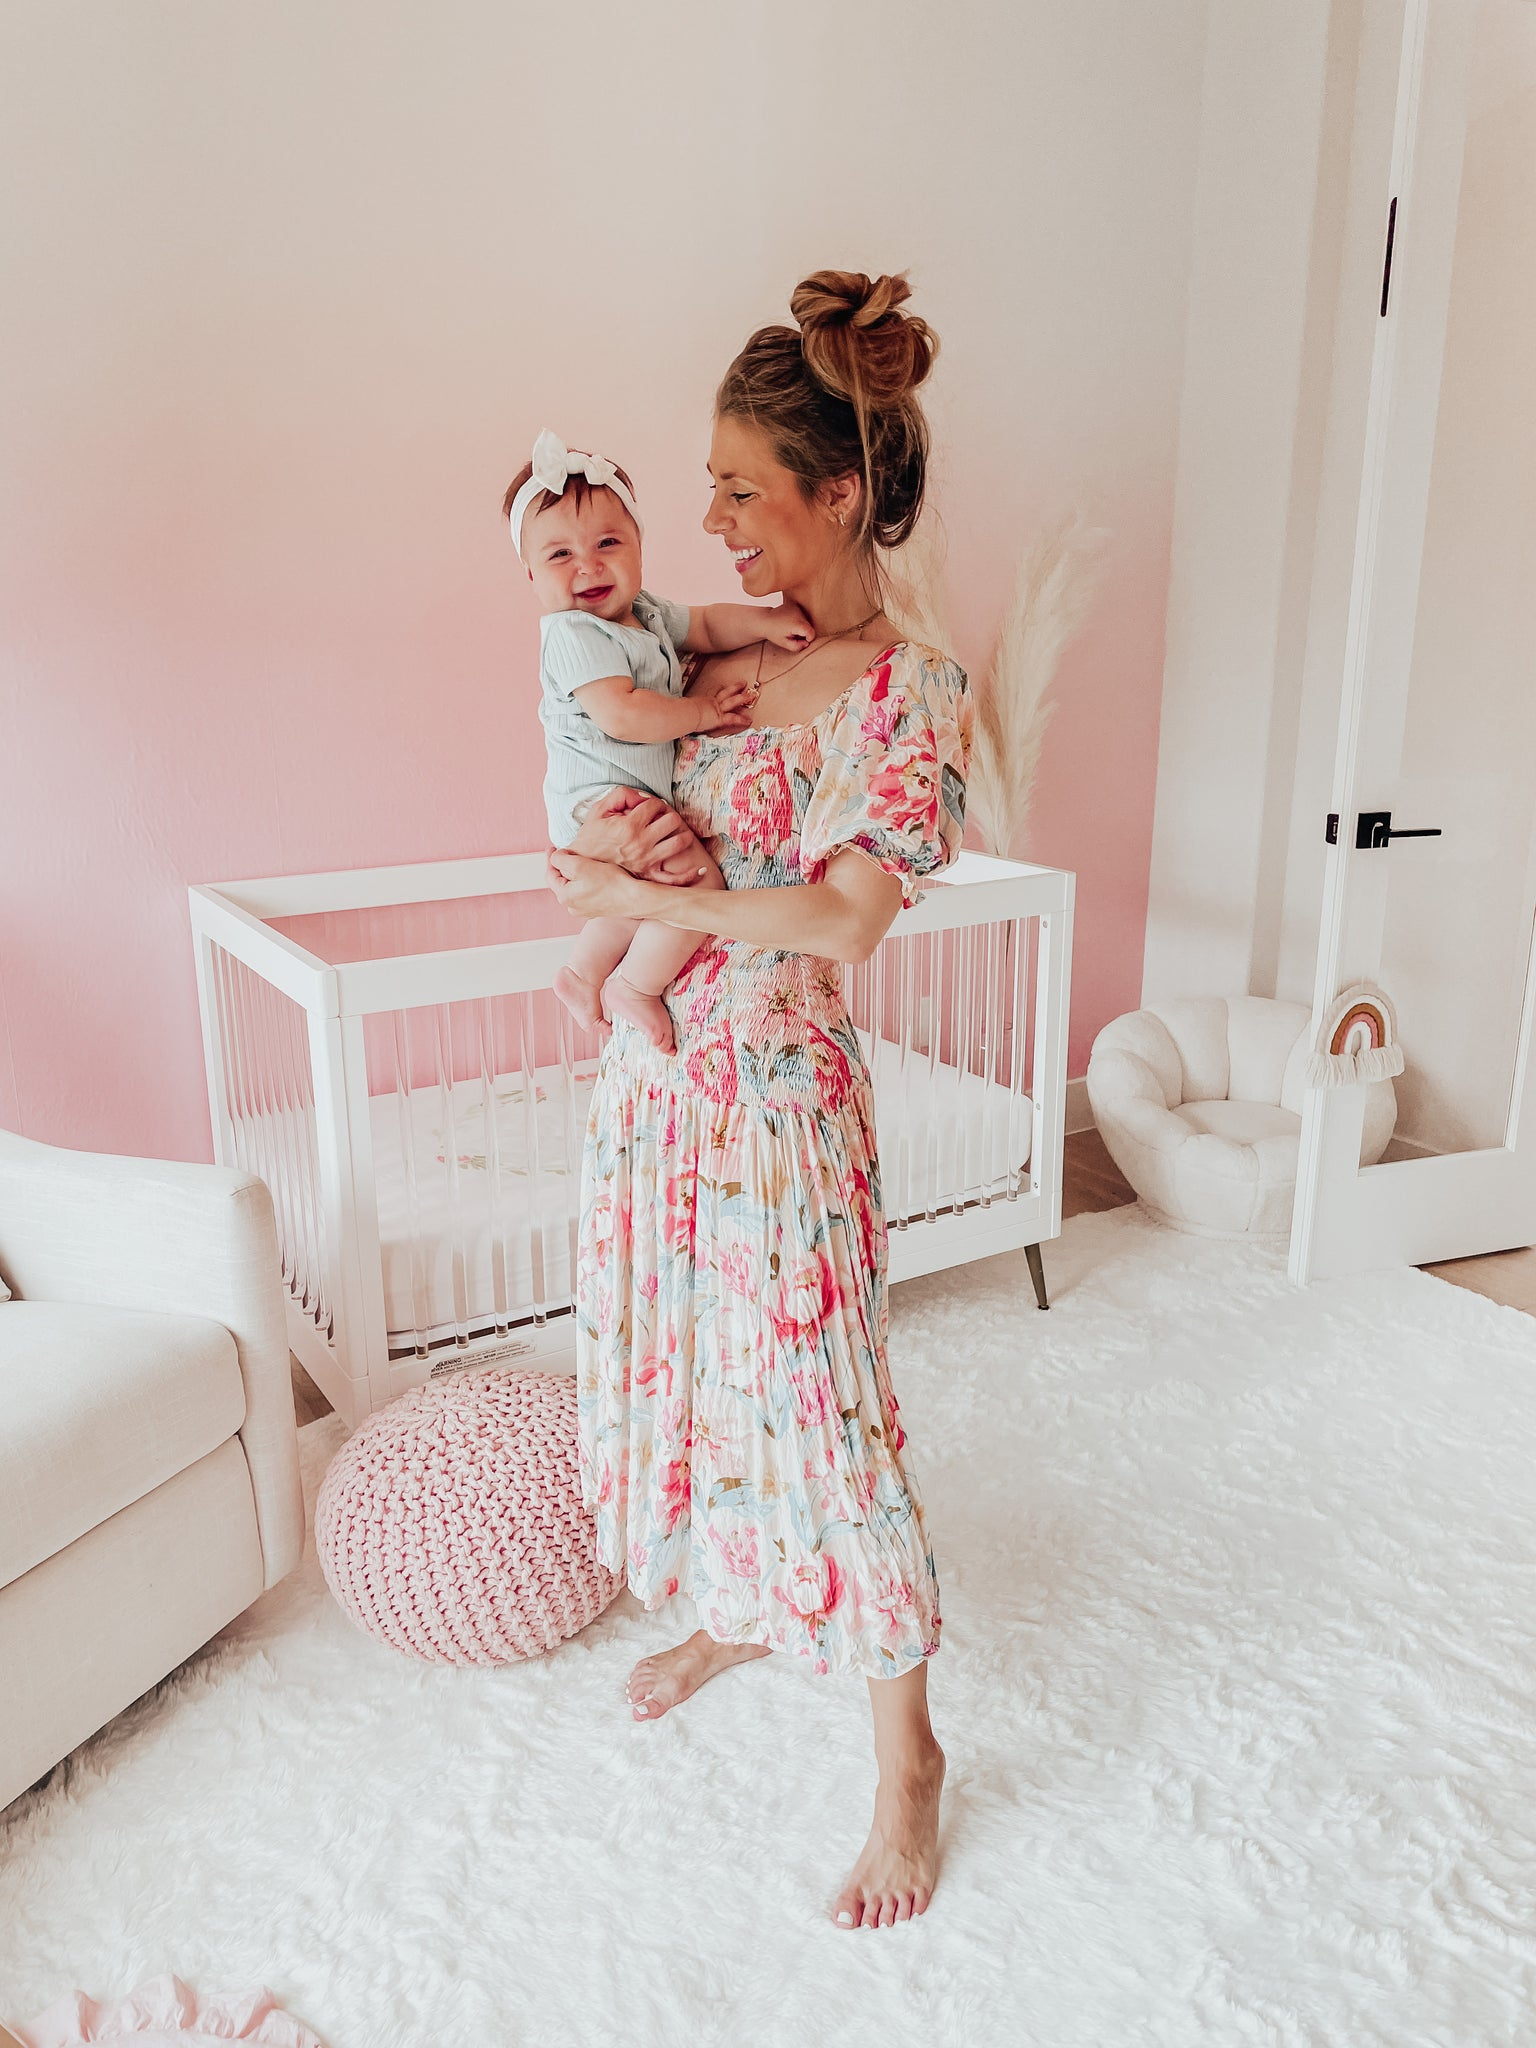 Cute baby pink nursery interior featuring removable wallpaper